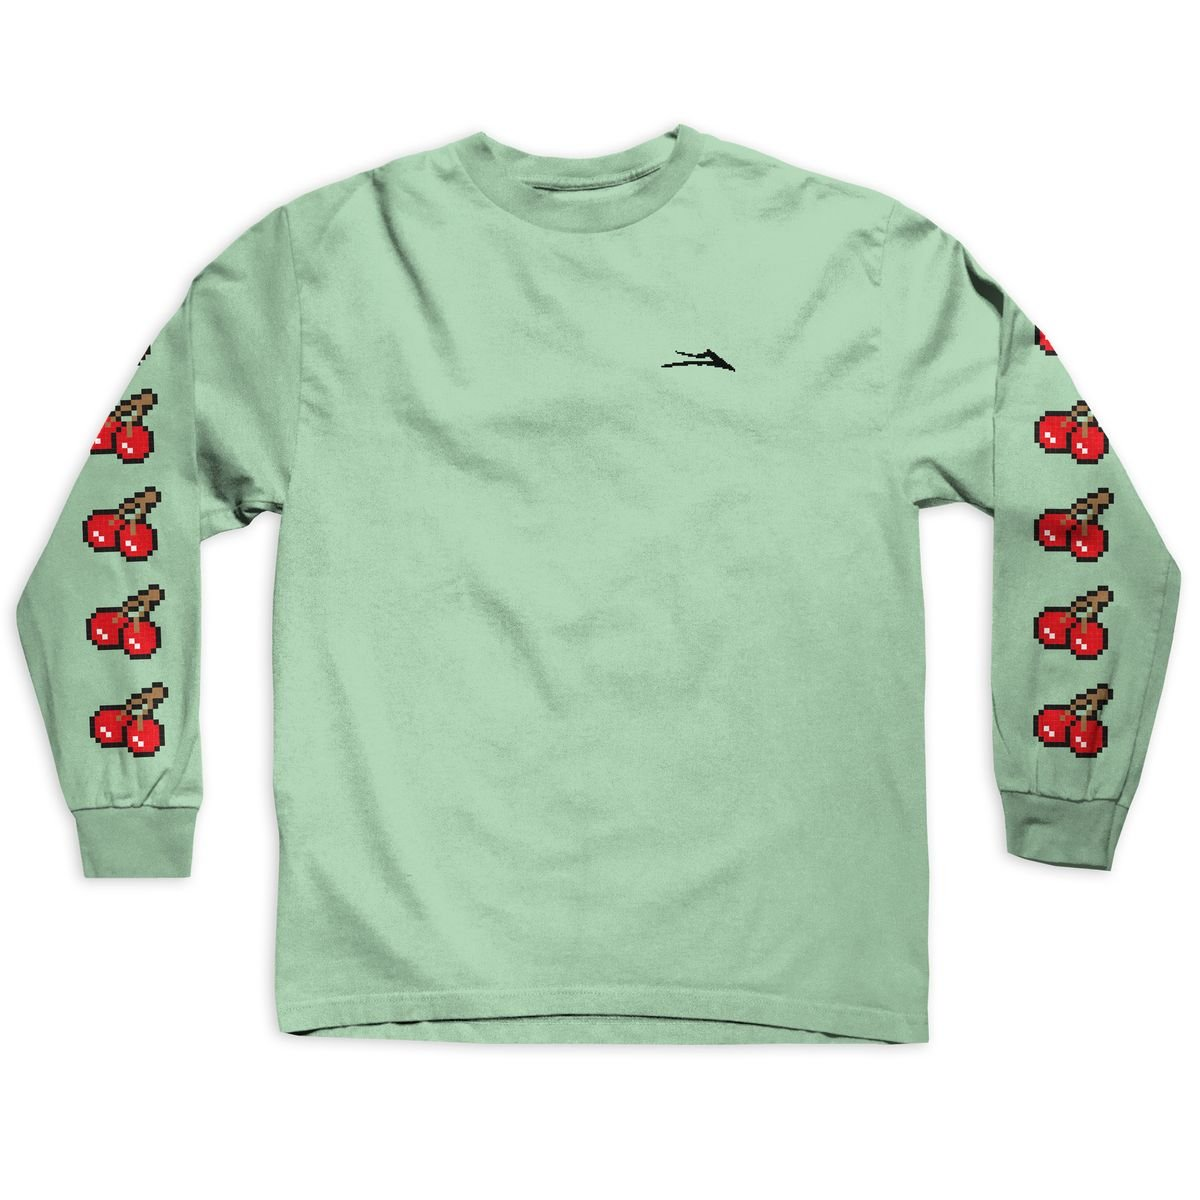 Lakai 8 Bit Long Sleeve t shirt celadon